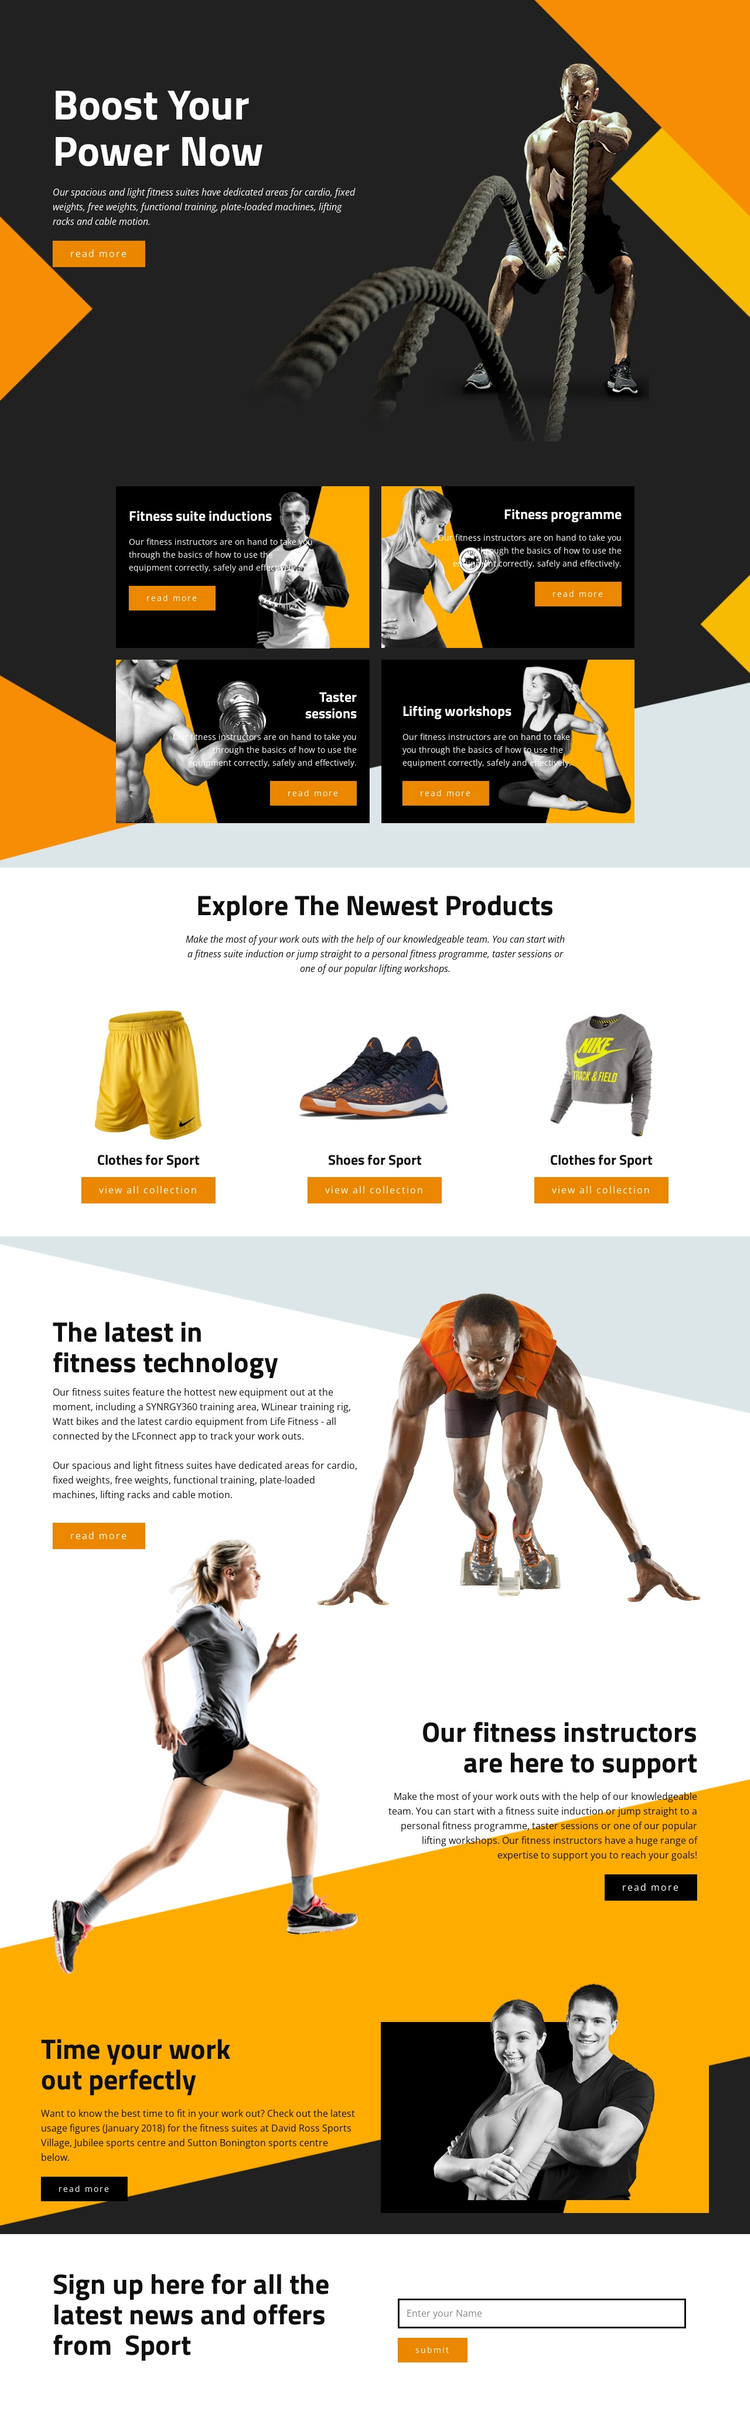 Boost your power with sports Website Builder Software